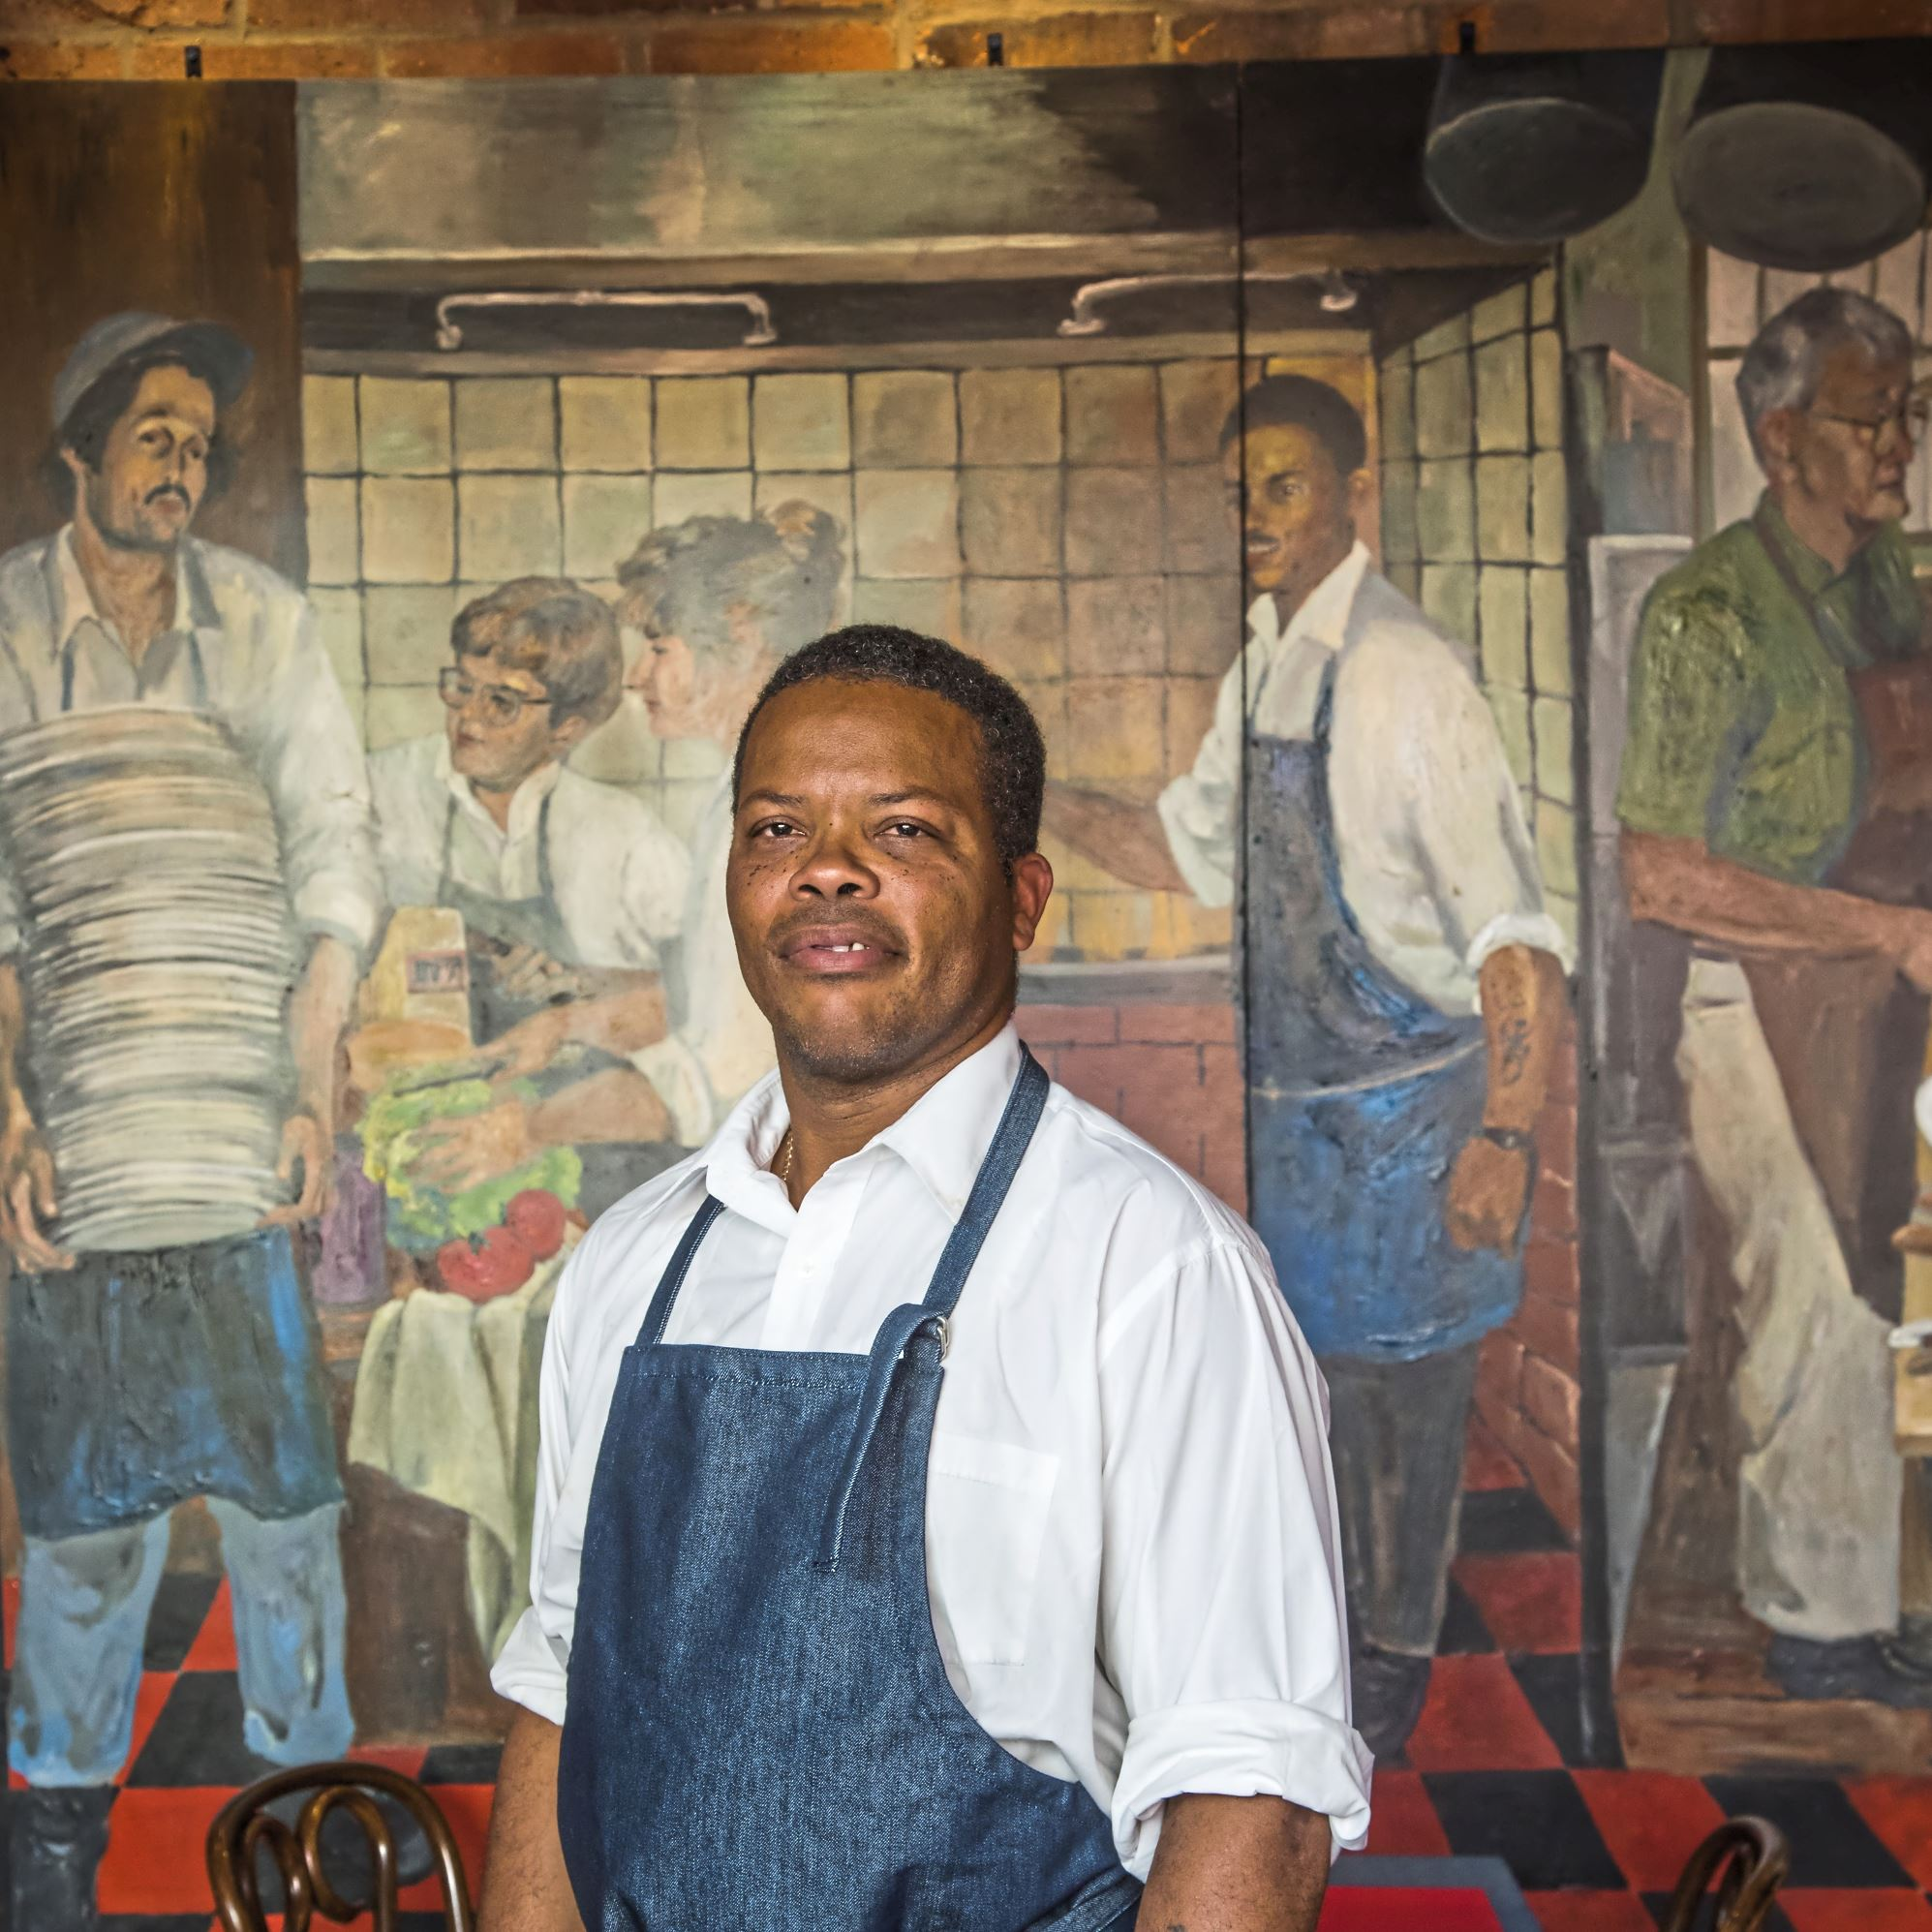 20170907arTessaros04-3 Grill master Courtney McFarlane in front of the mural at Tessaro's that features him and other members of the restaurant family.